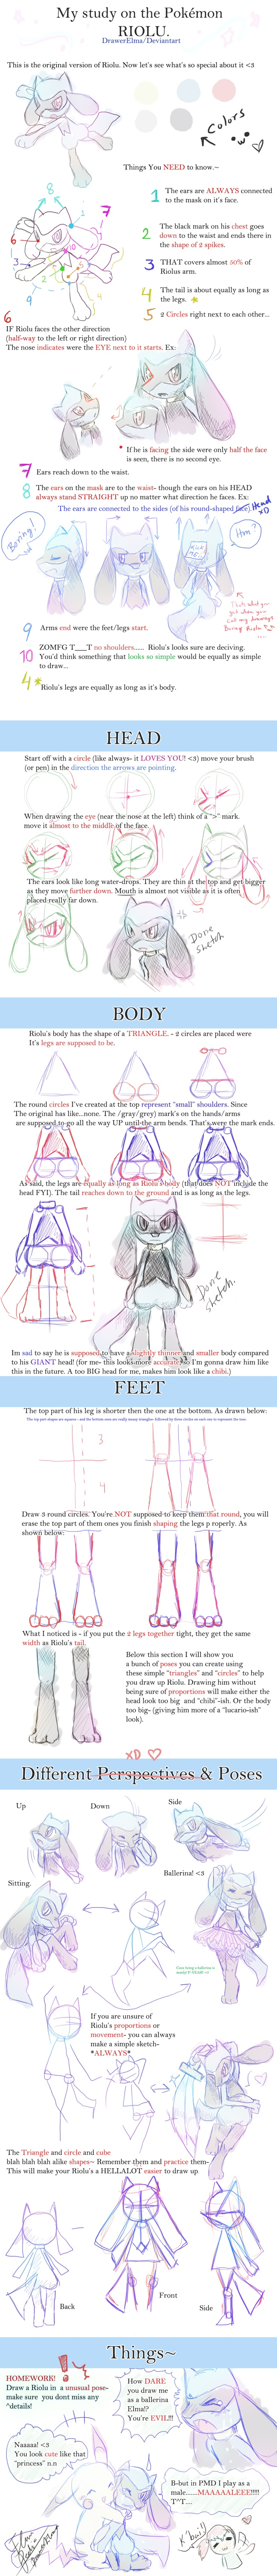 How+to+Draw+Riolu+-+DrawerElma's+Study+by+DrawerElma.deviantart.com+on+@deviantART